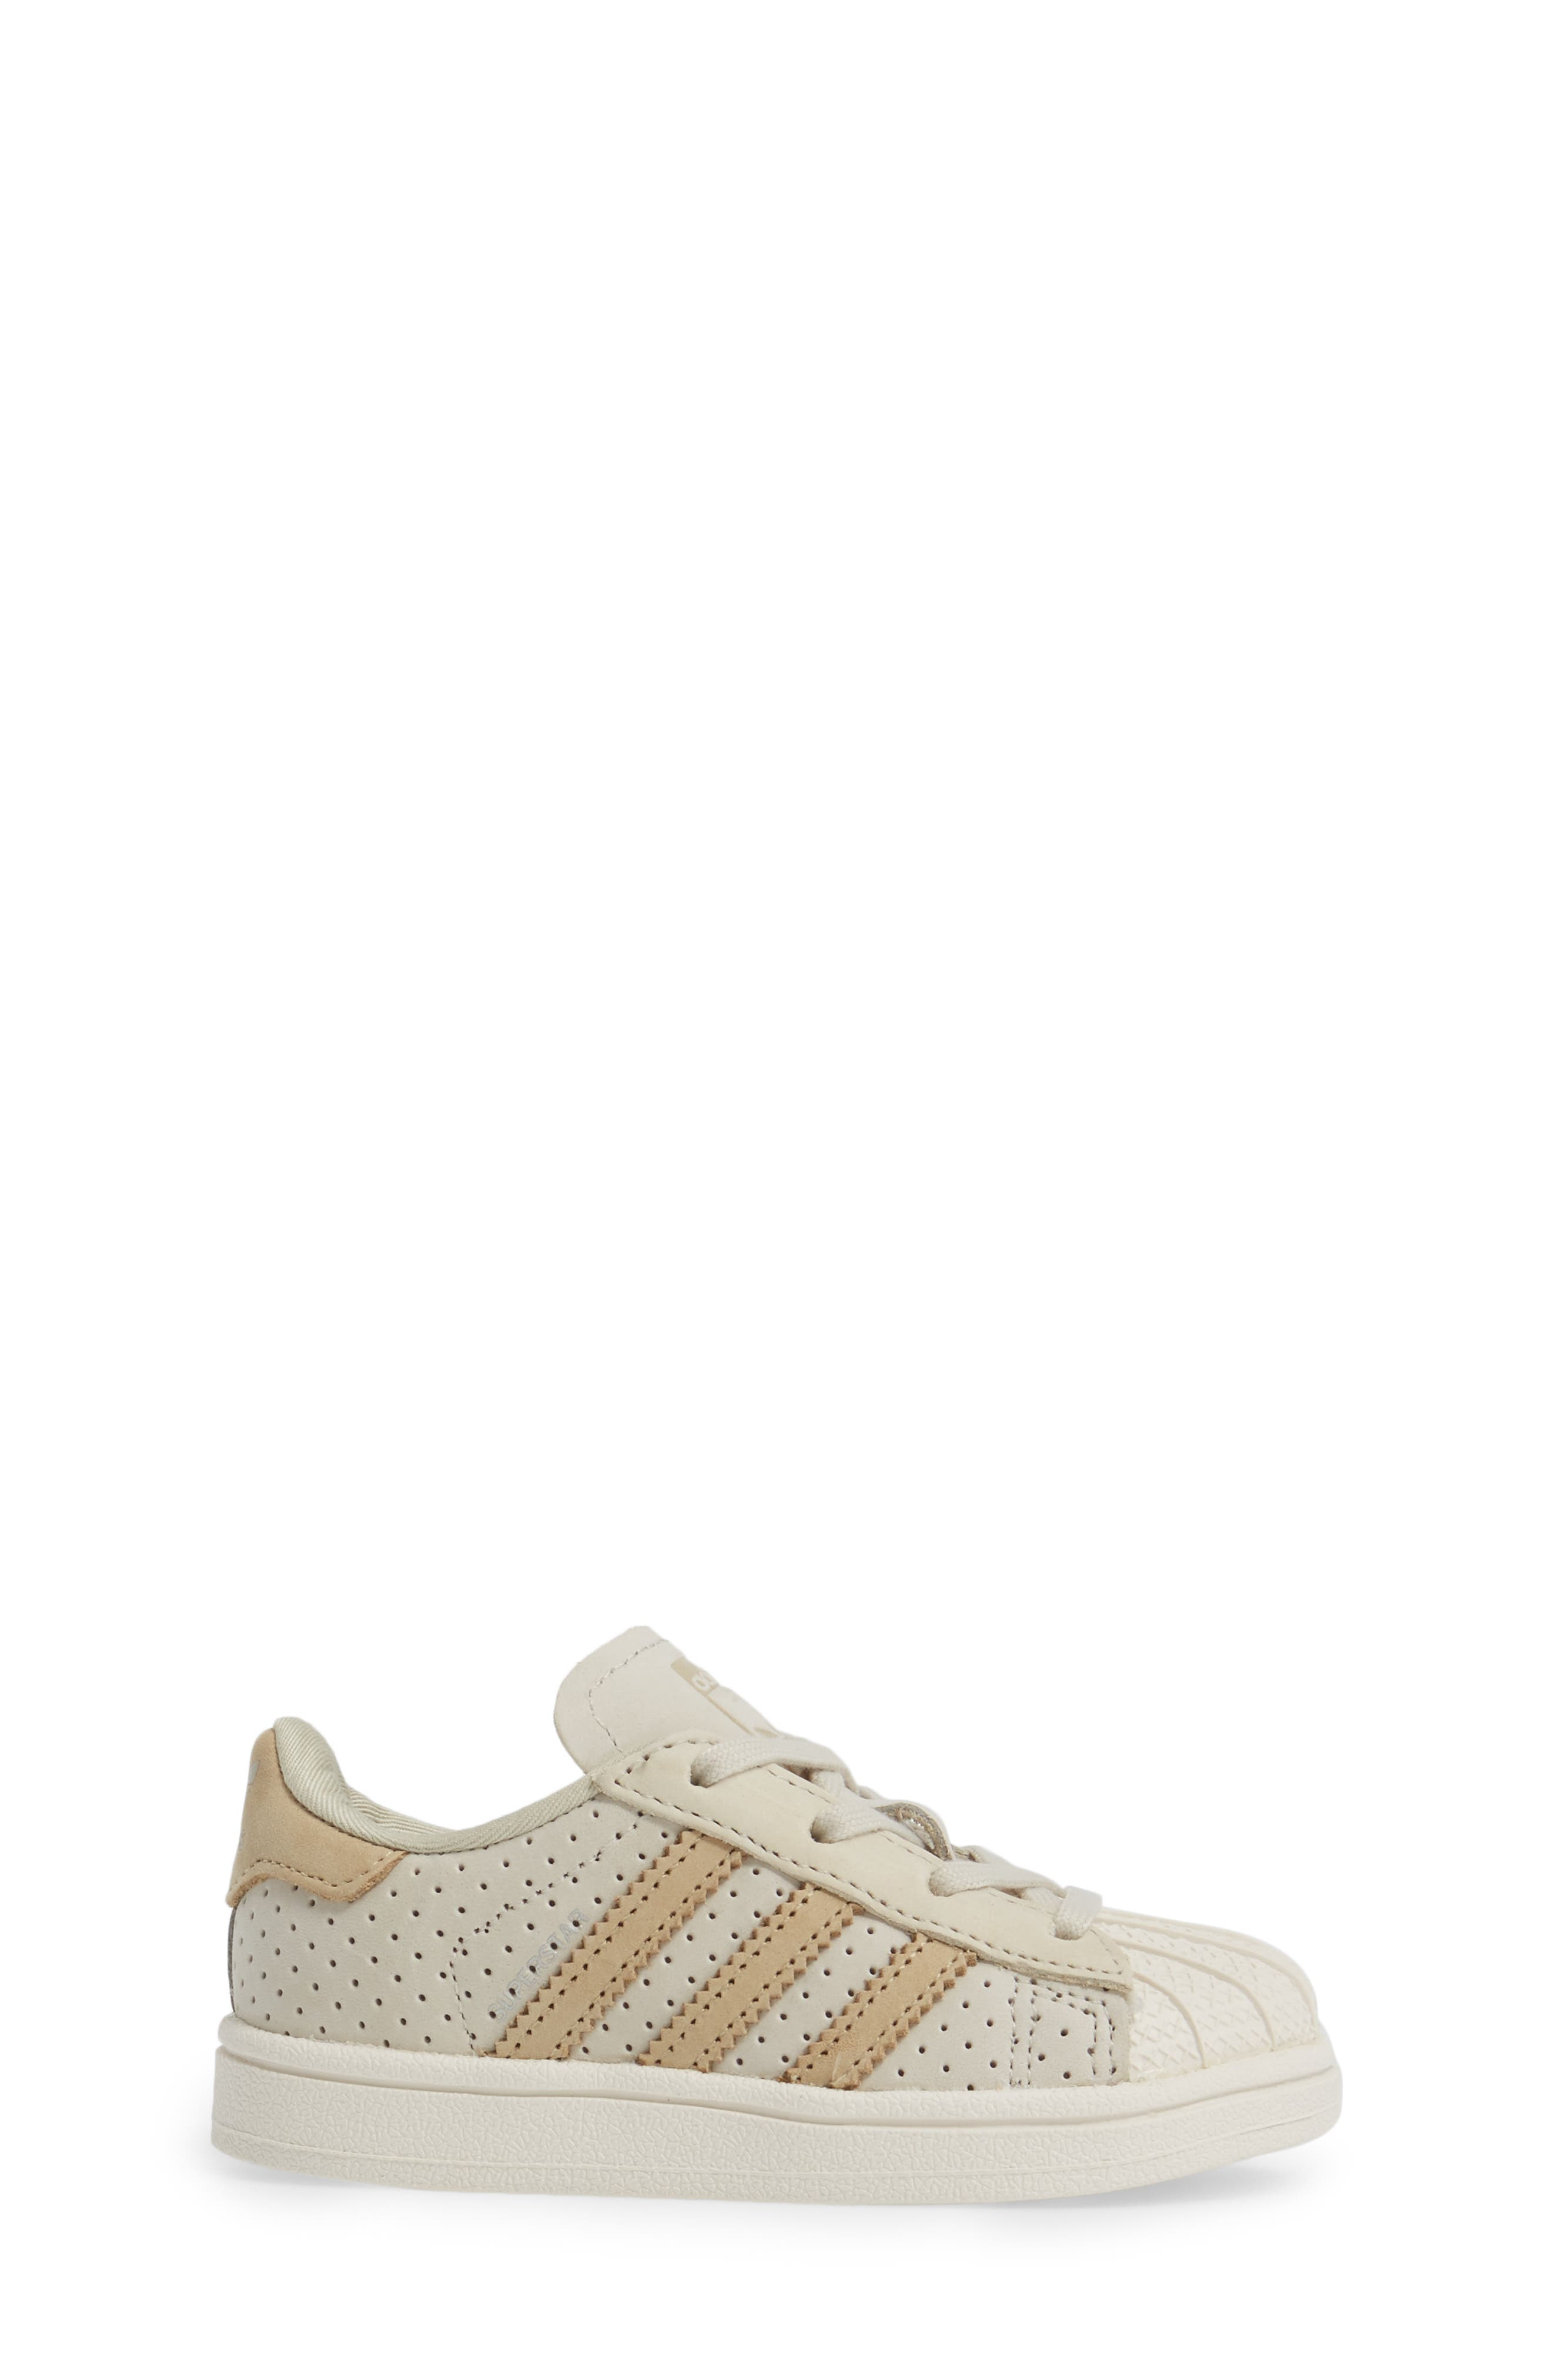 Stan Smith Fashion I Perforated Sneaker,                             Alternate thumbnail 3, color,                             200